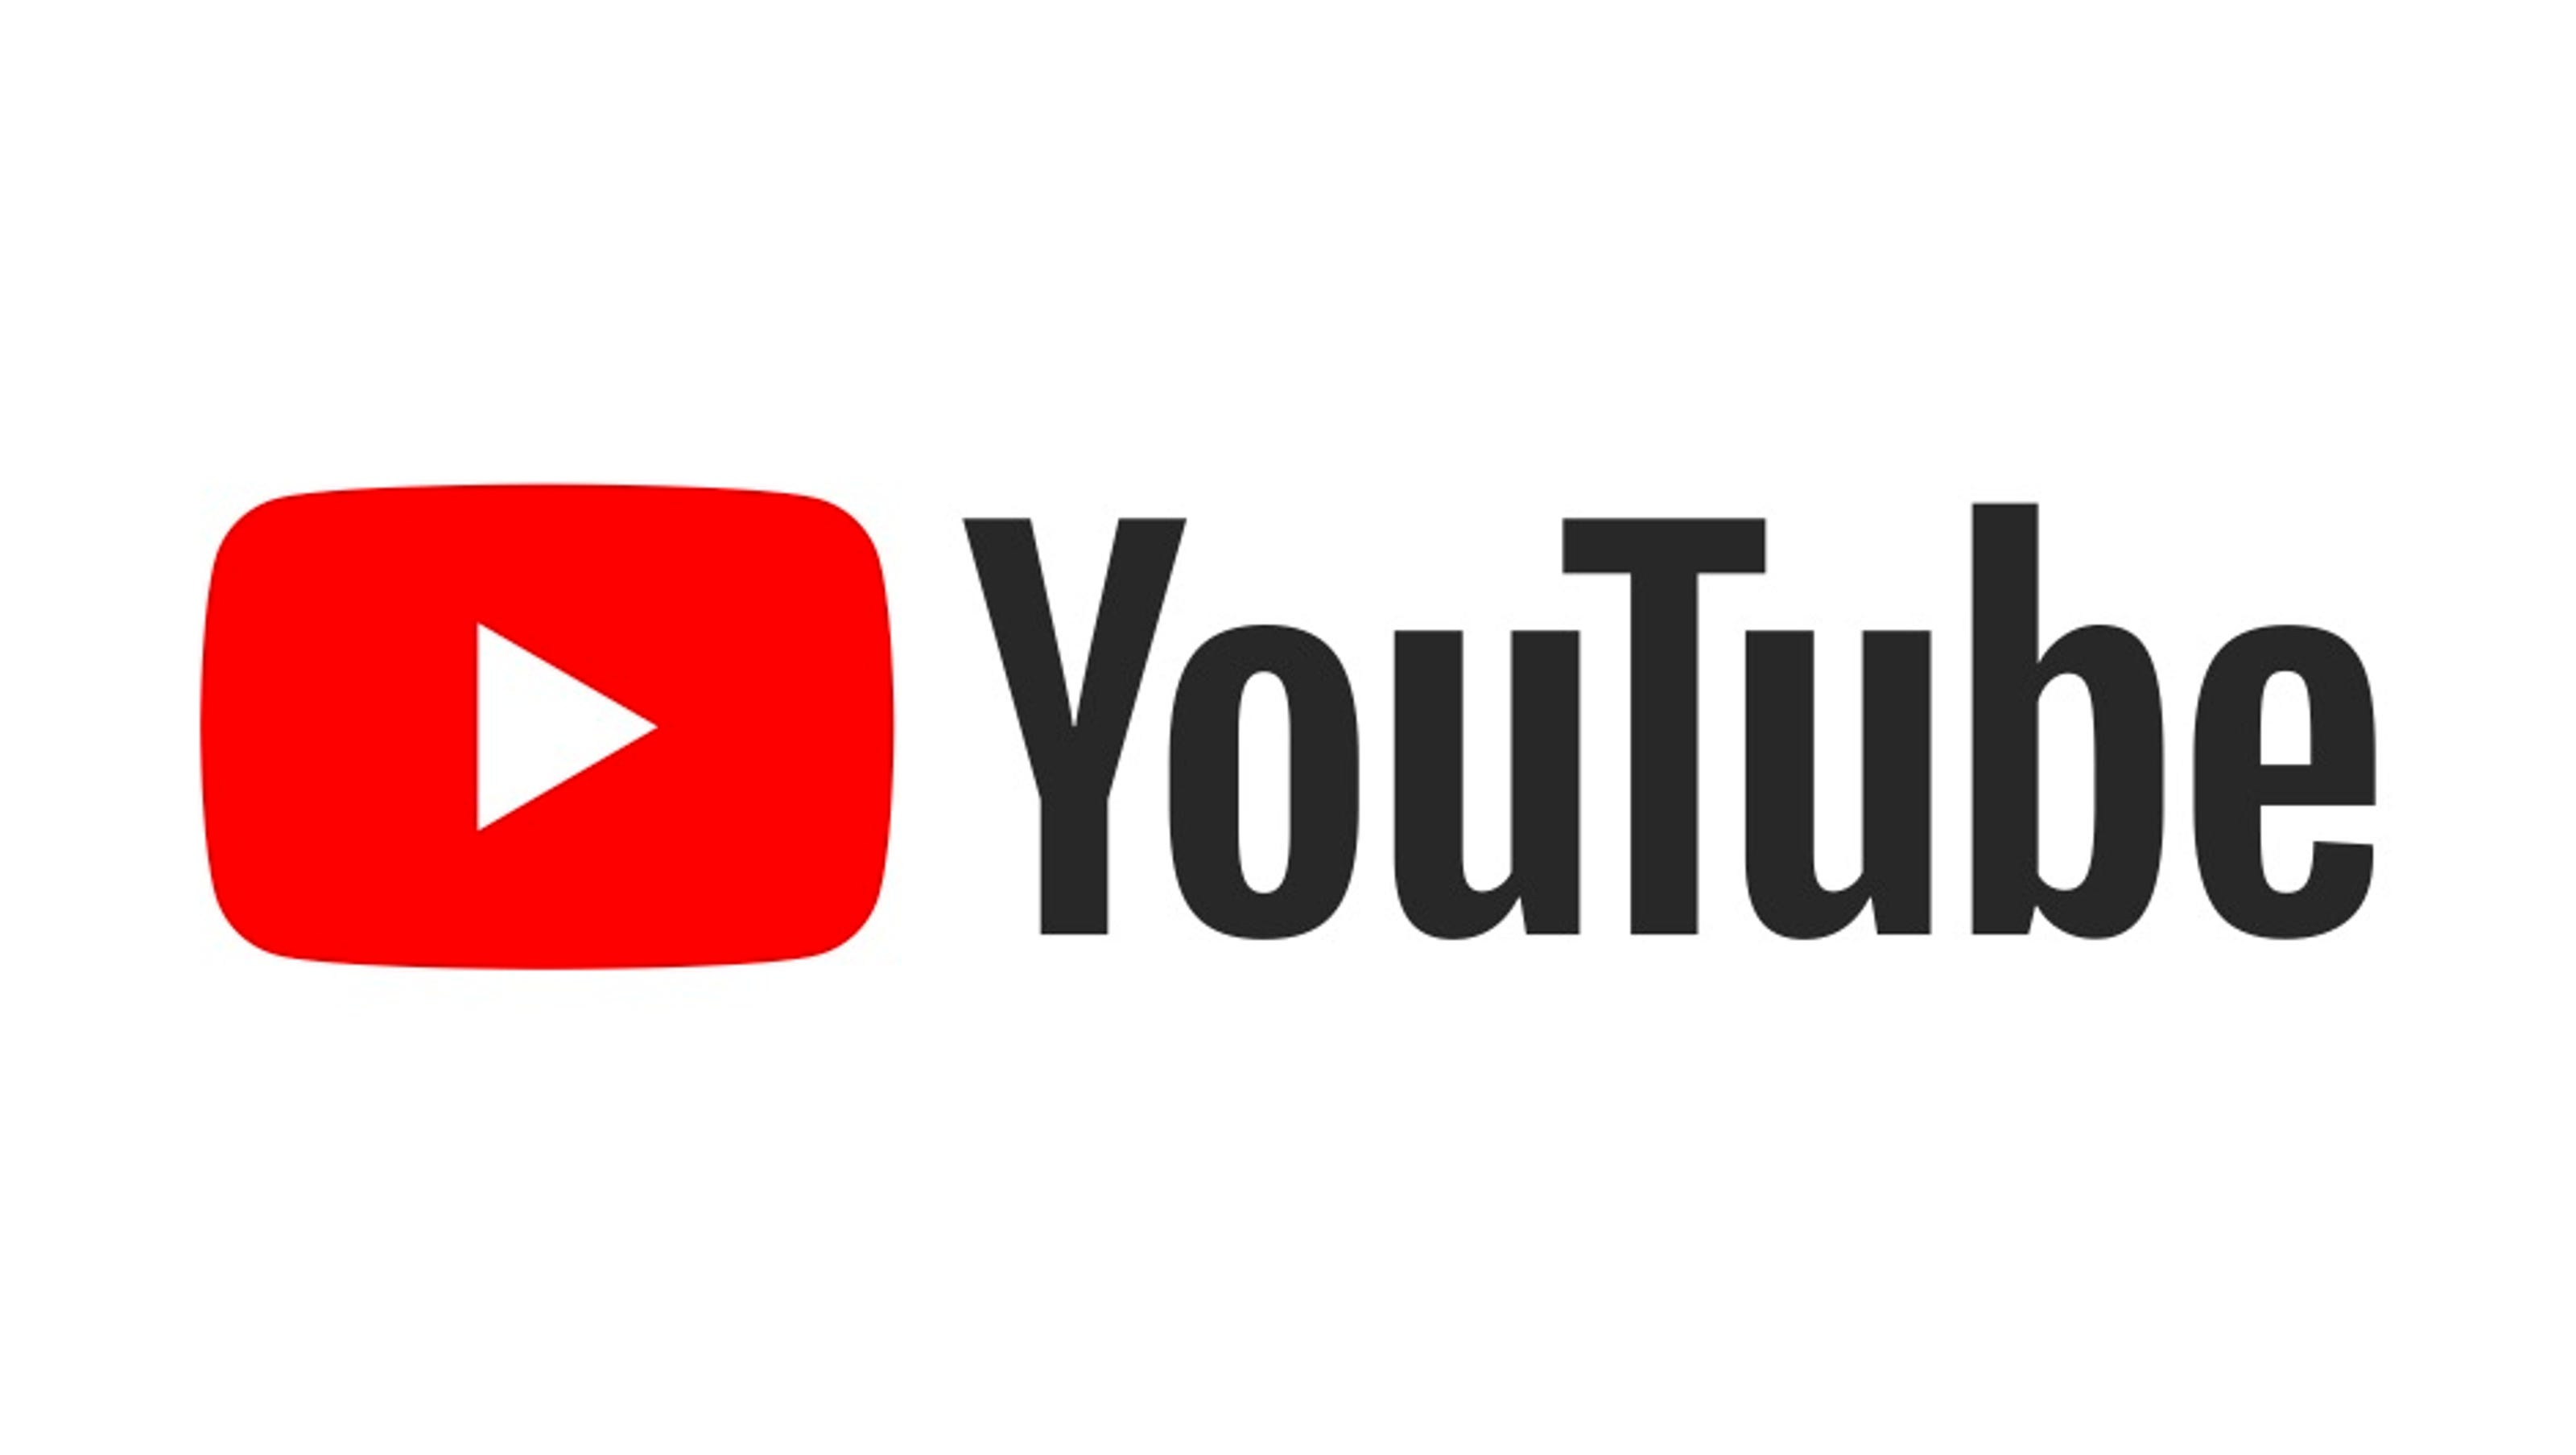 youtube to stop recommending conspiracy videos that